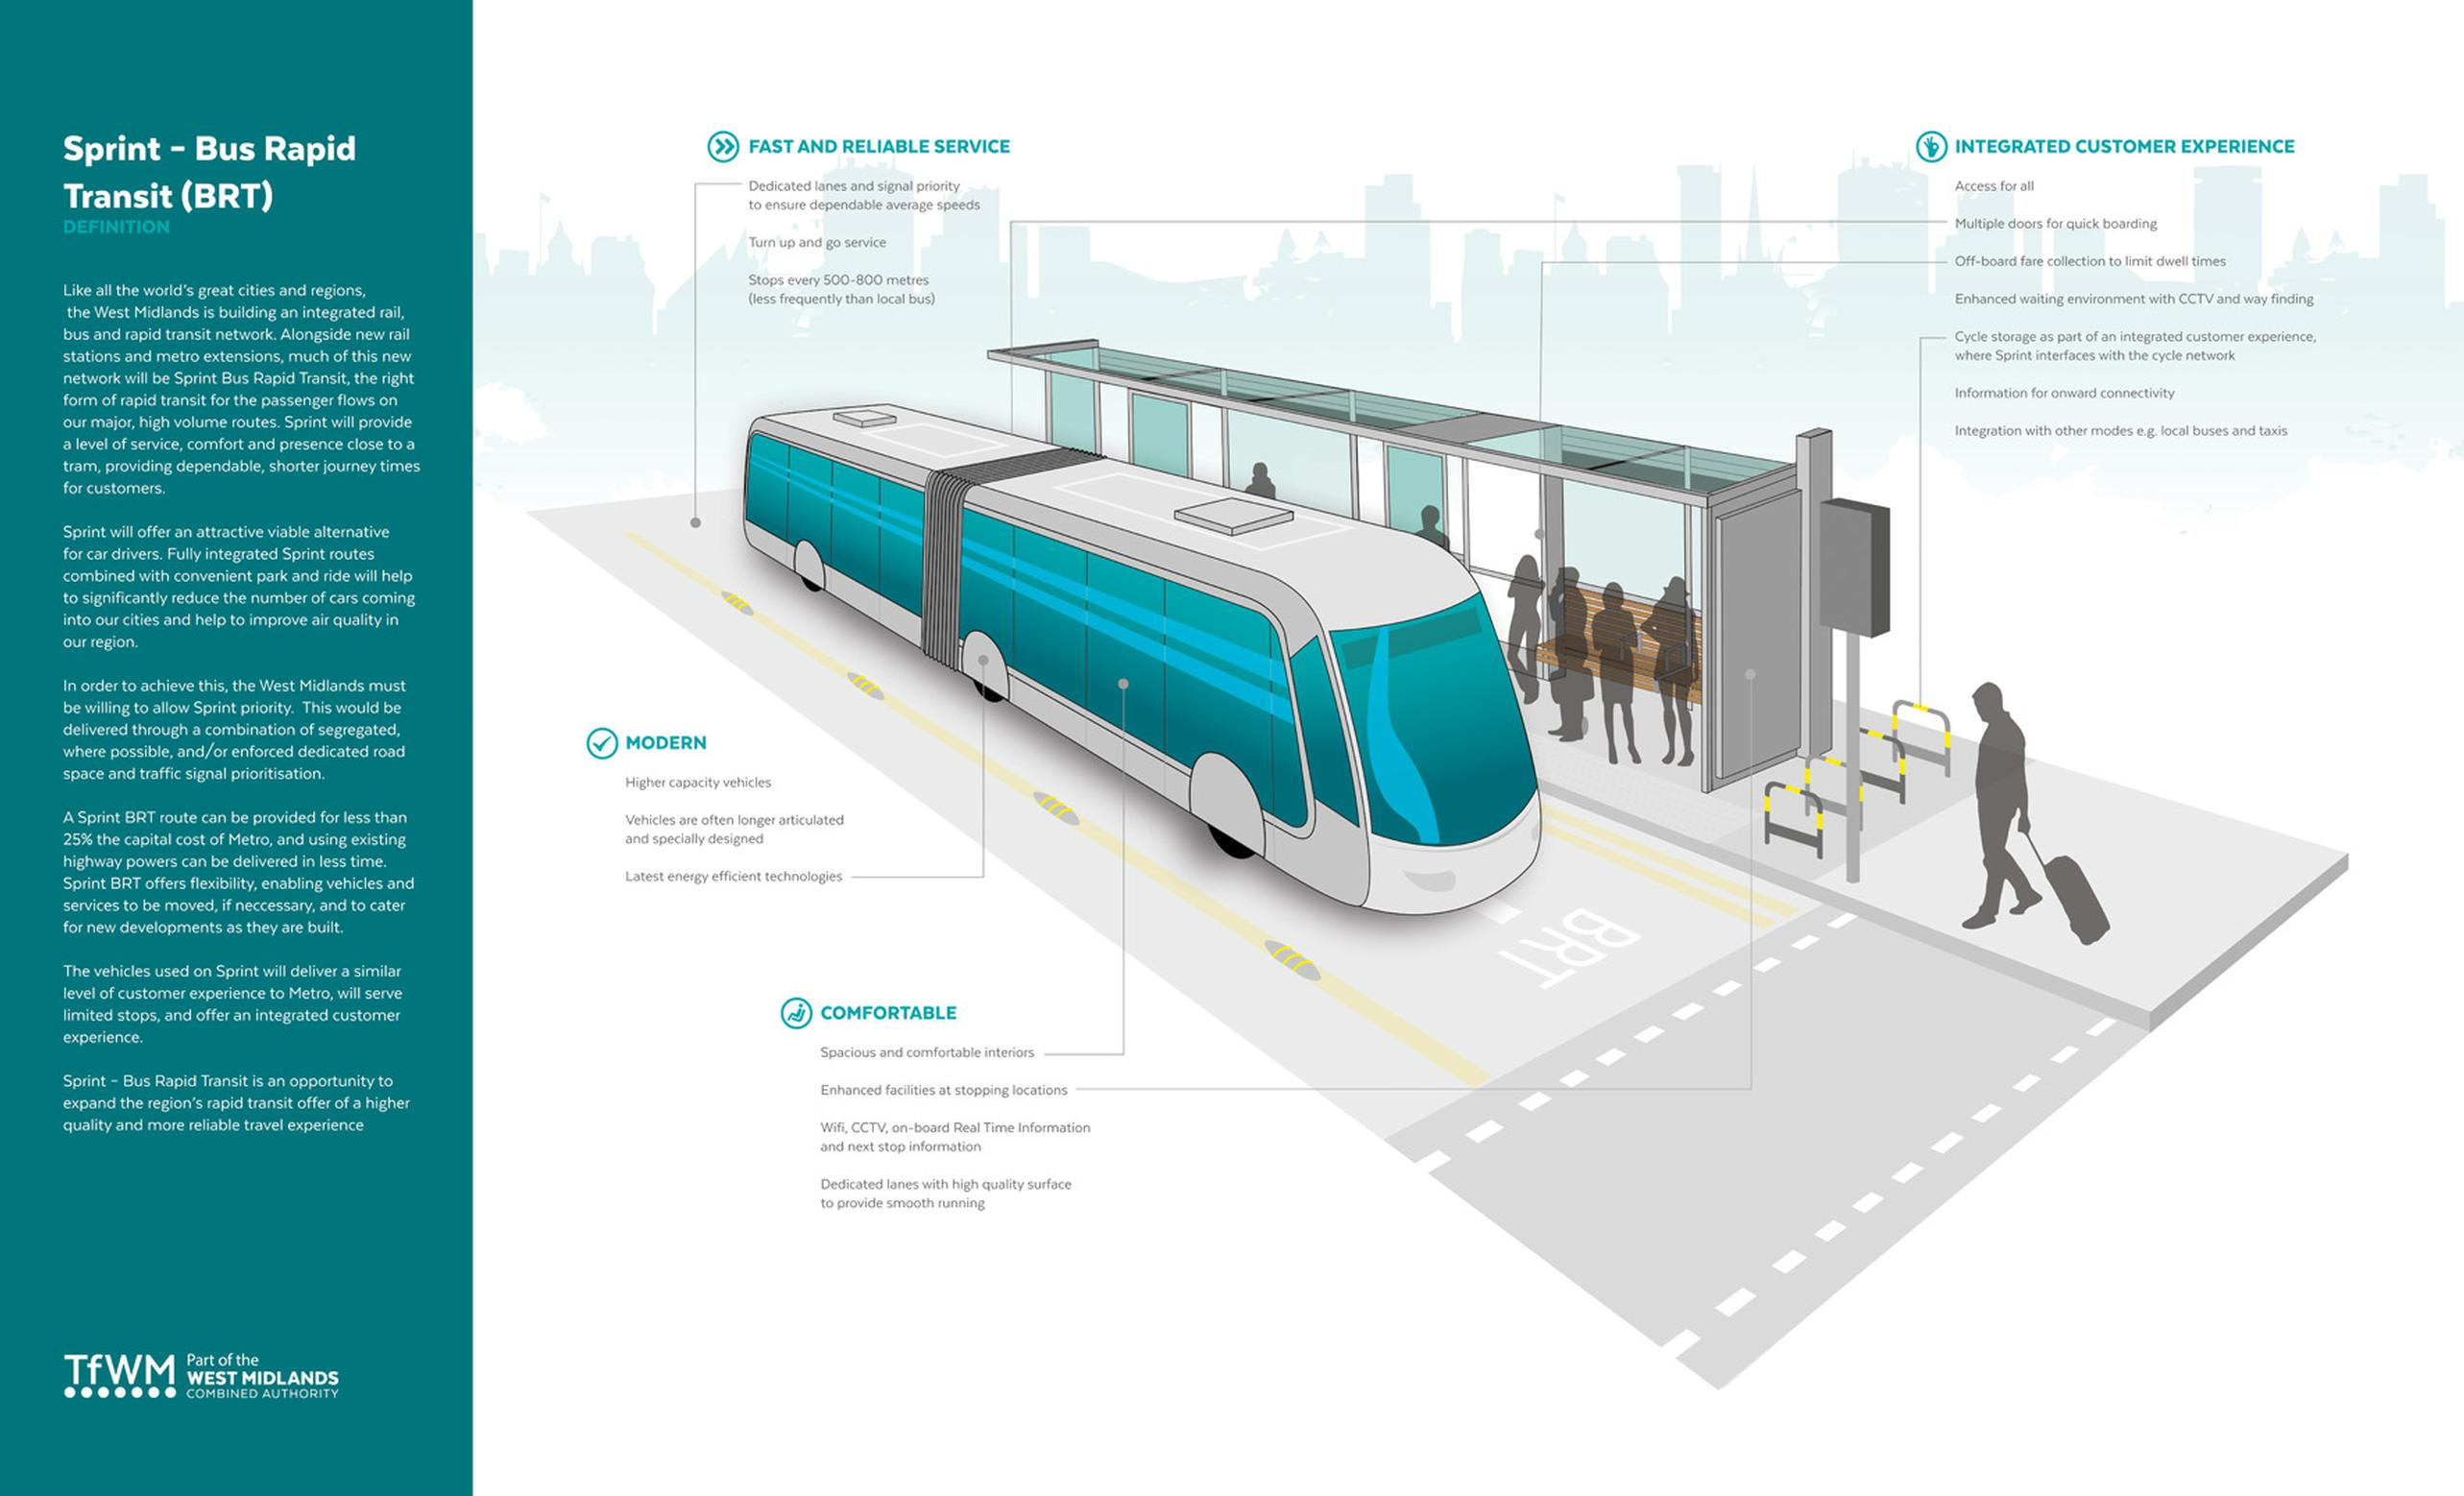 Transport for West Midlands infographic highlighting the benefits of the Sprint rapid transit system, due to begin operation in 2022